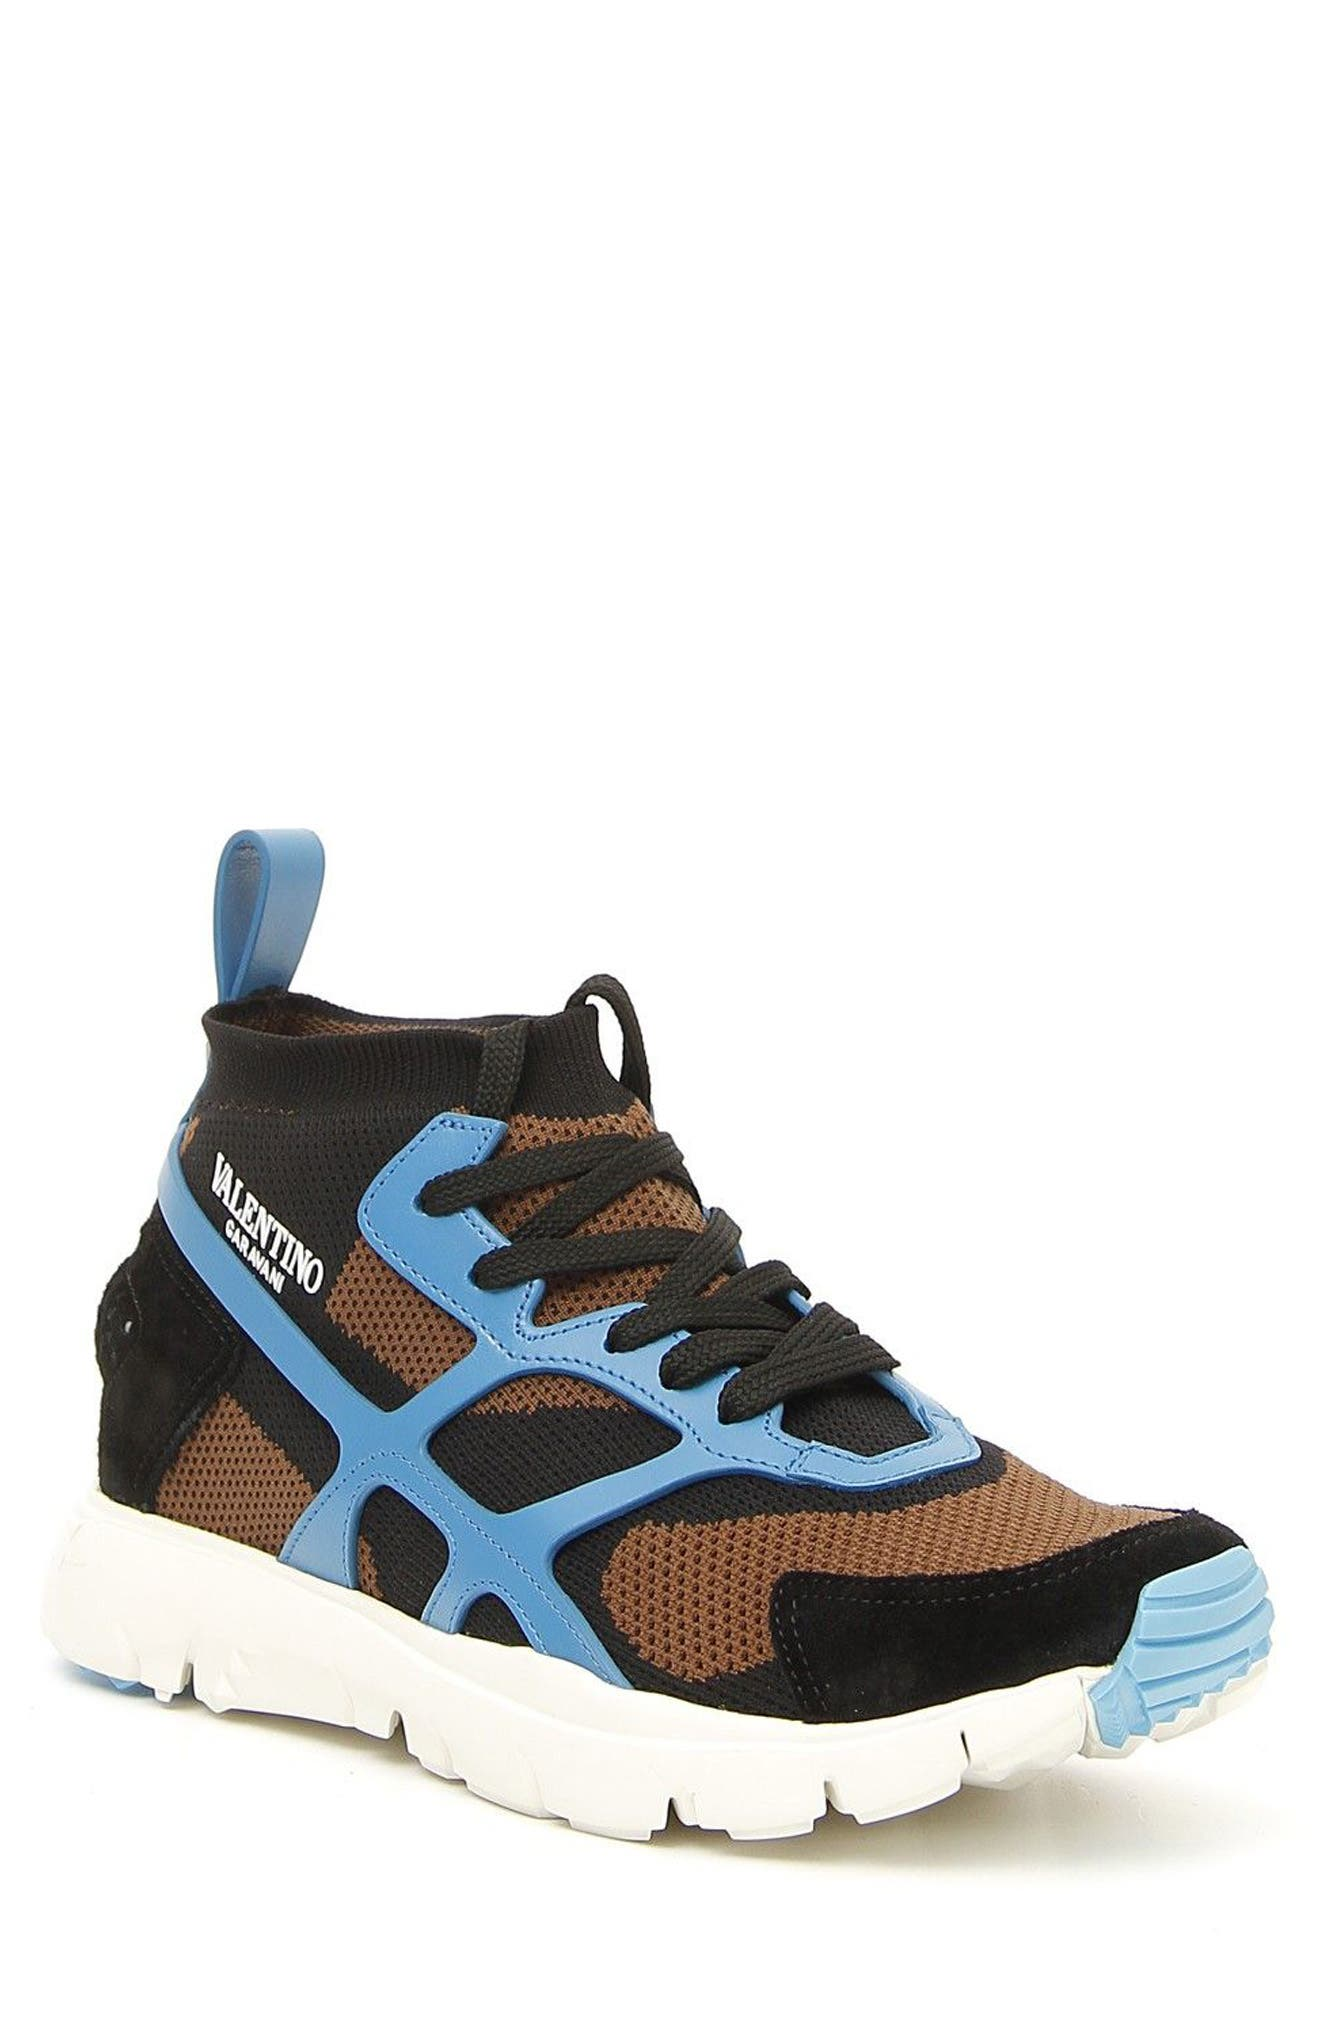 Sound High Sneaker,                         Main,                         color, 200